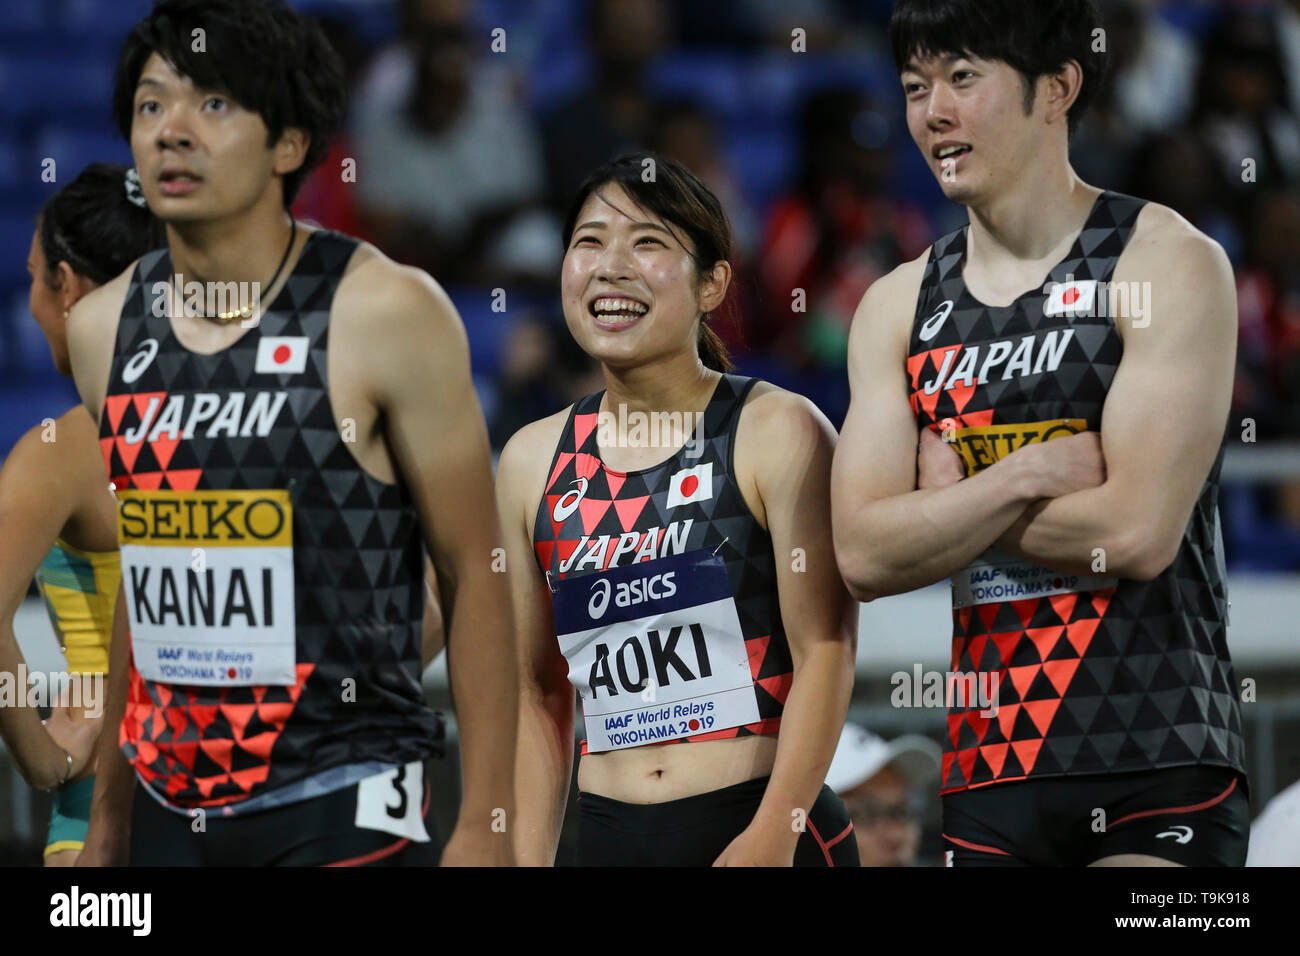 YOKOHAMA, JAPAN - MAY 10: Masumi Aoki of Japan during Day 1 of the 2019 IAAF World Relay Championships at the Nissan Stadium on Saturday May 11, 2019 in Yokohama, Japan. (Photo by Roger Sedres for the IAAF) - Stock Image